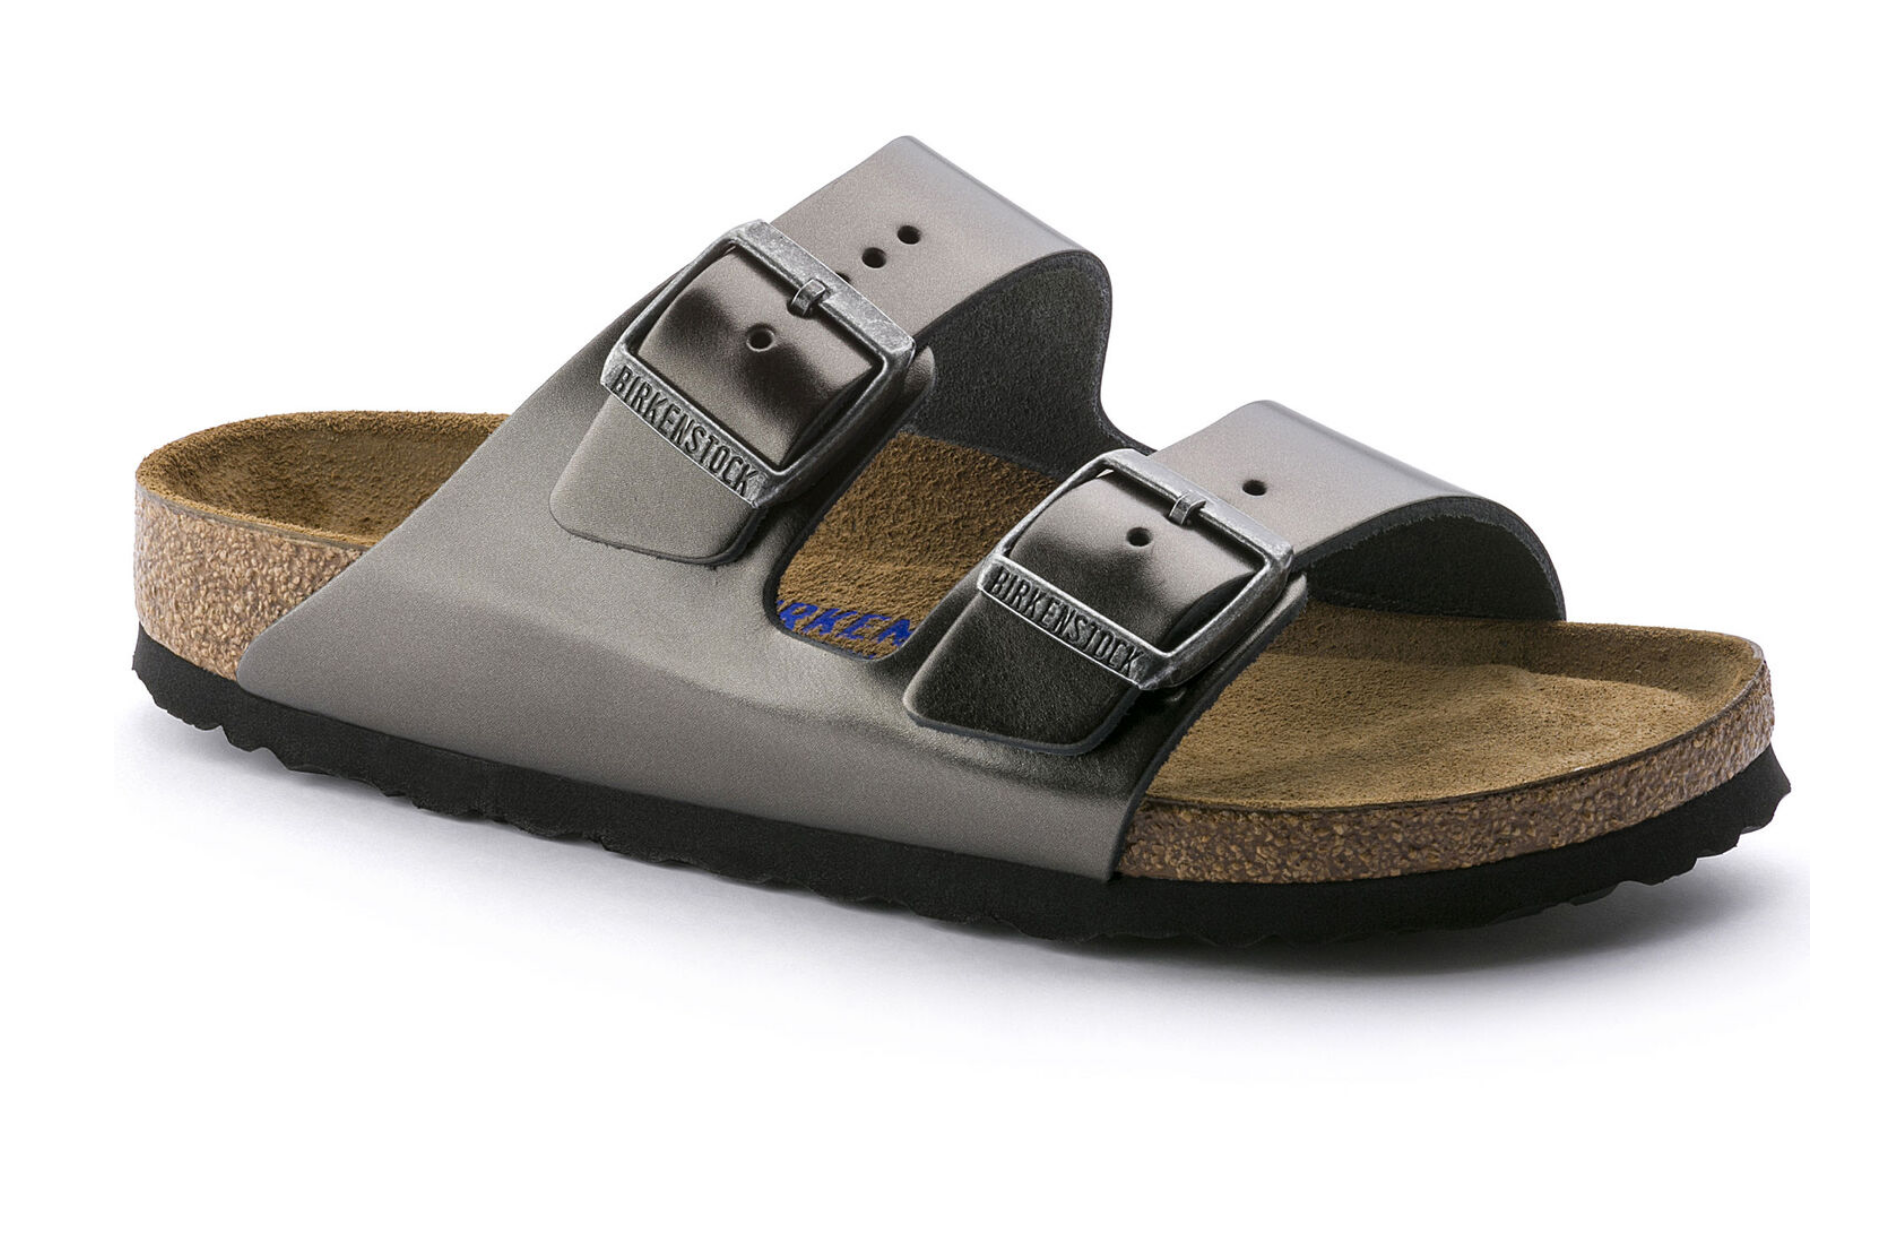 Arizona Soft Footbed in Metallic Anthracite-1